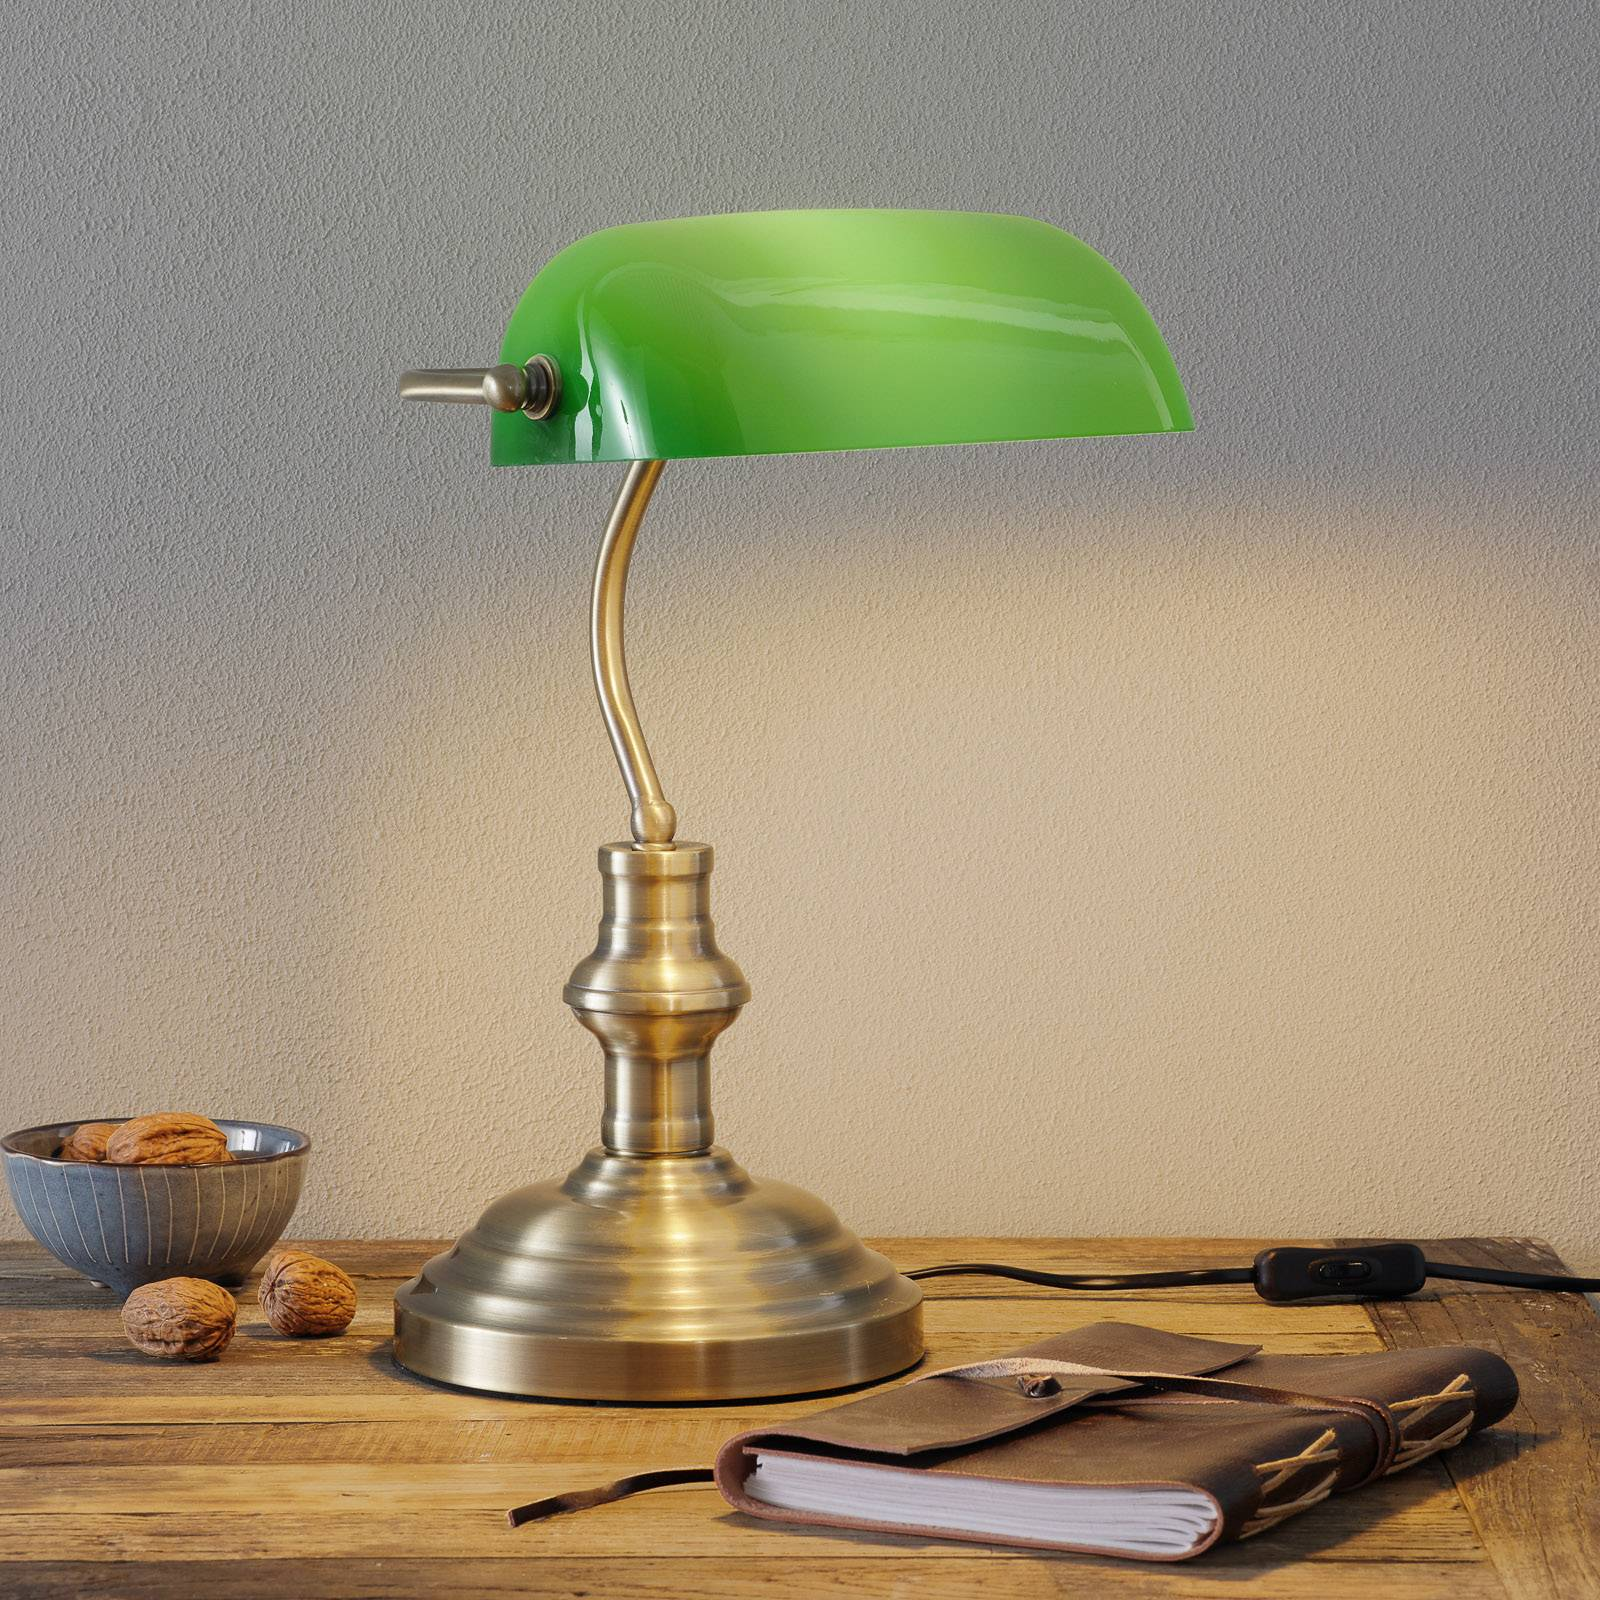 Bankers classic table lamp 42 cm green from LamP GUSTAF